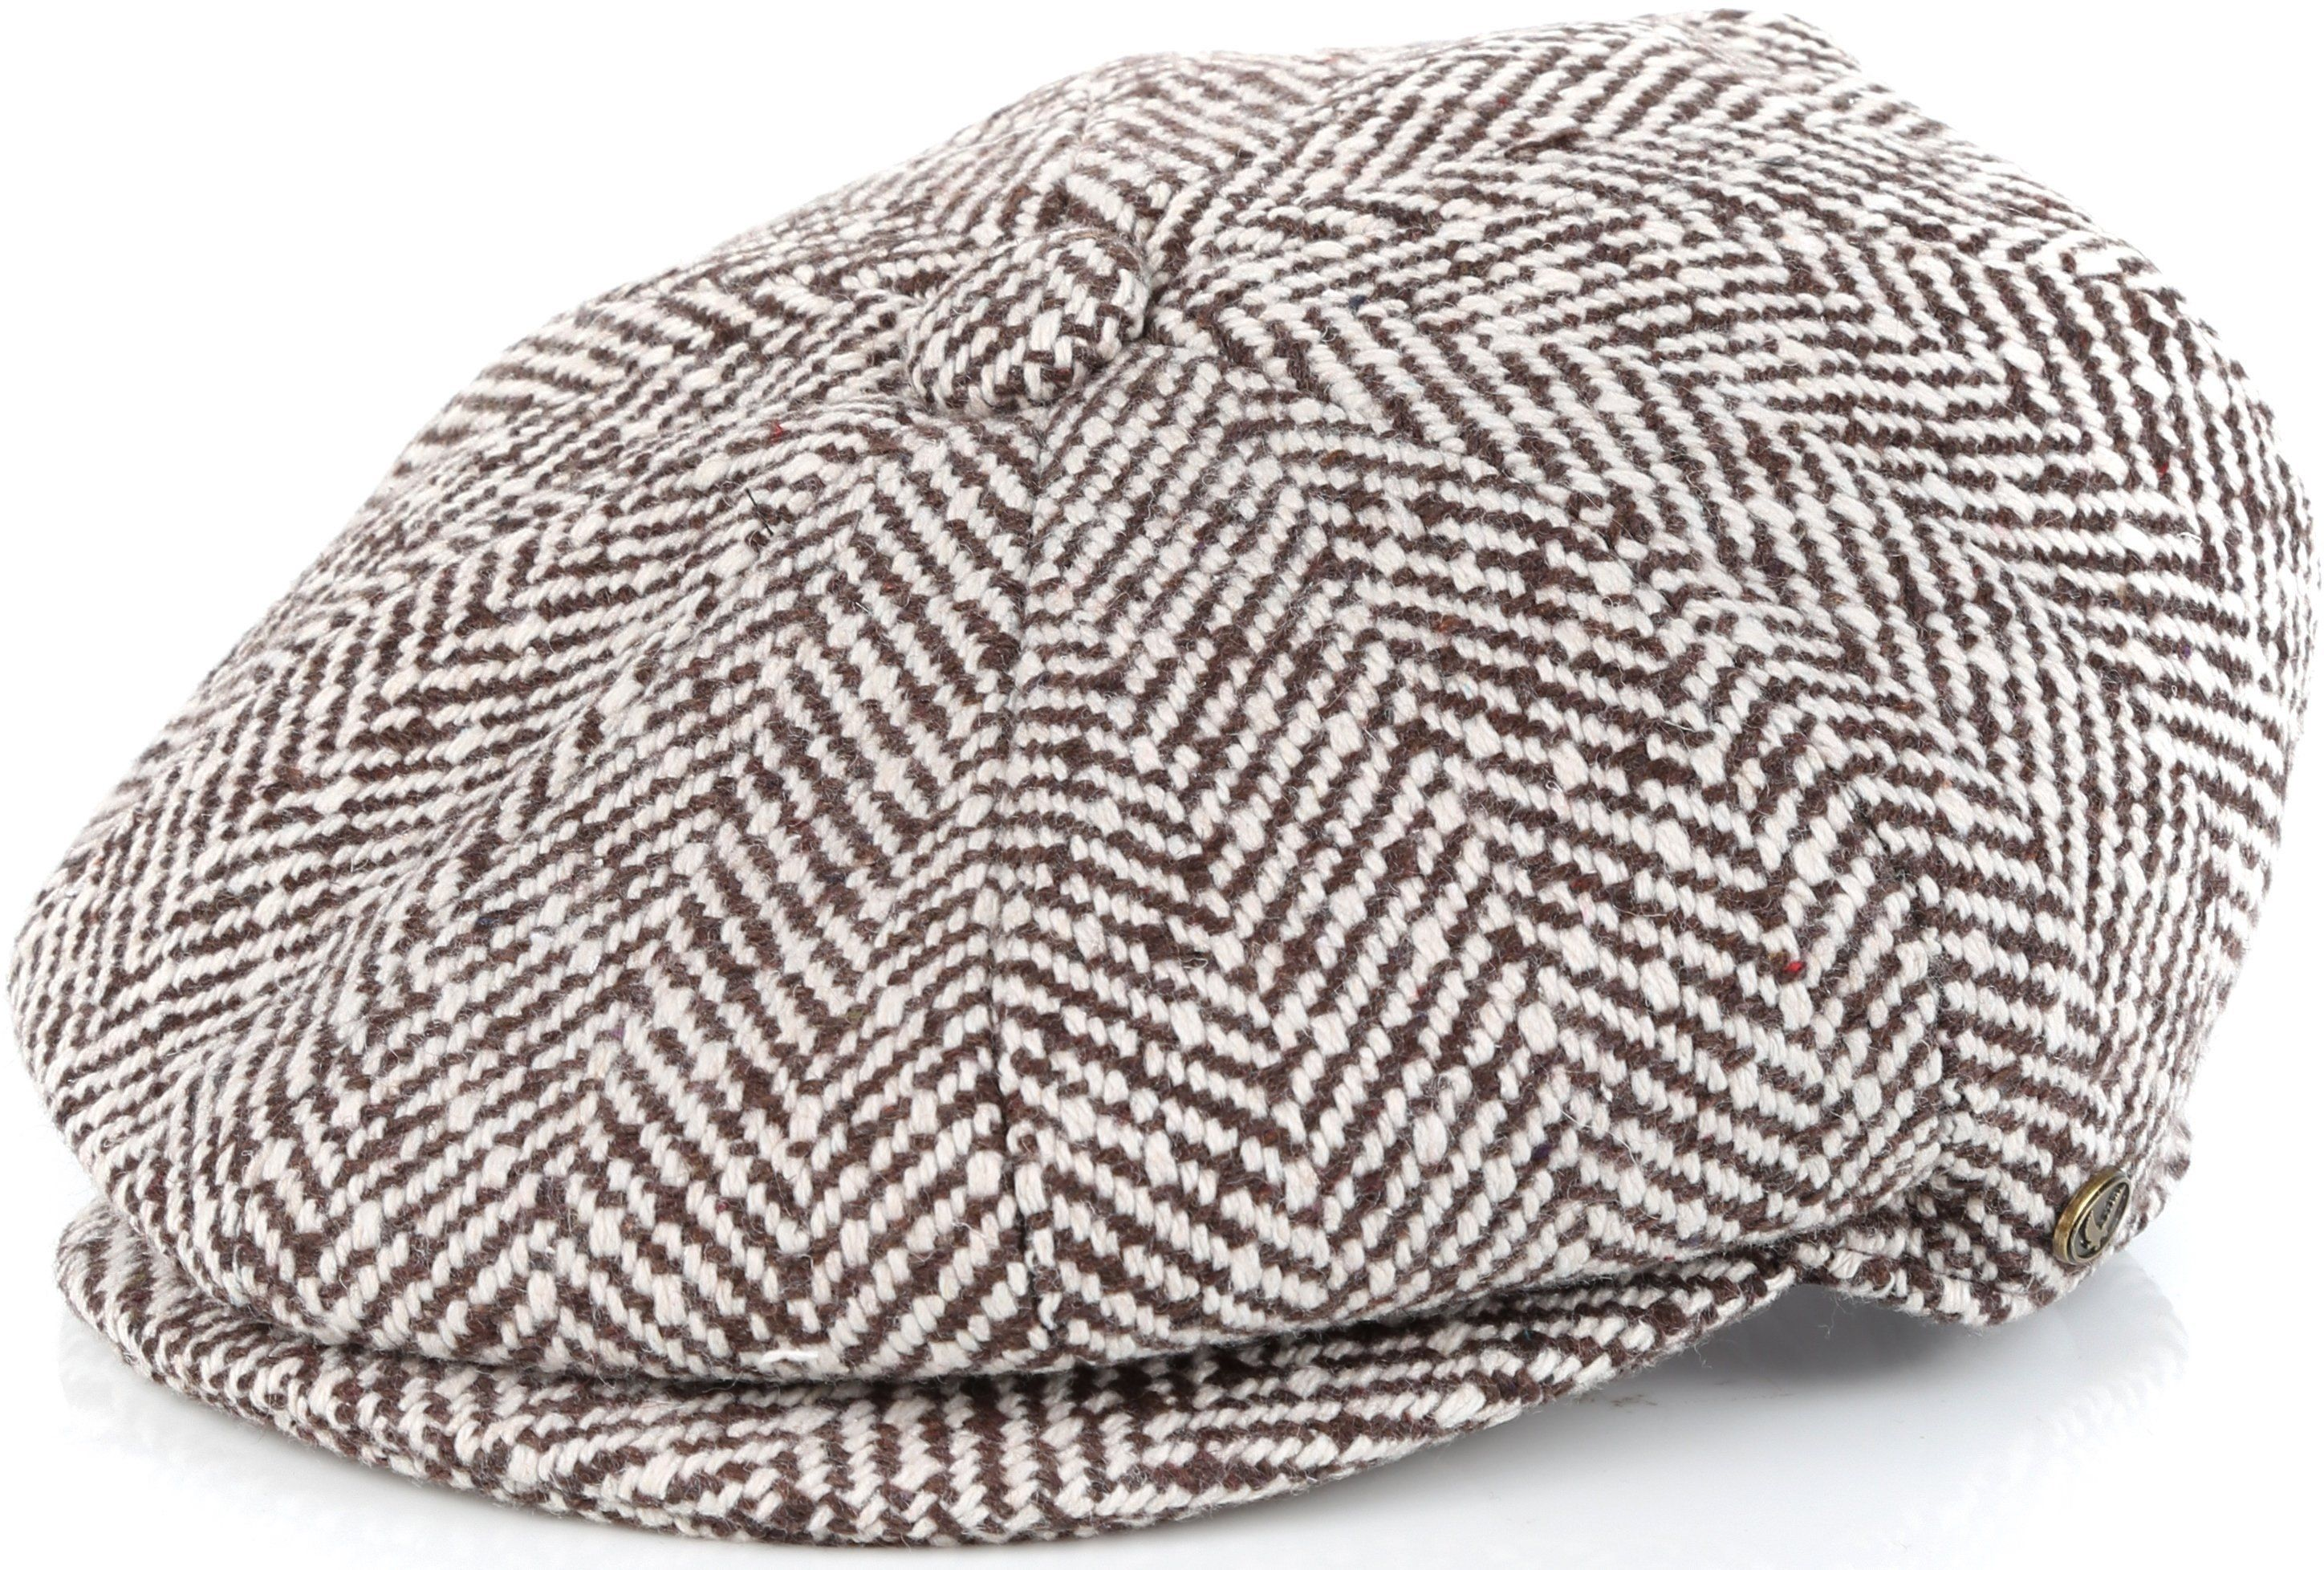 192cf86e0 Sakkas Vintage Style Wool Blend Newsboy Snap Brim Cap | Products ...